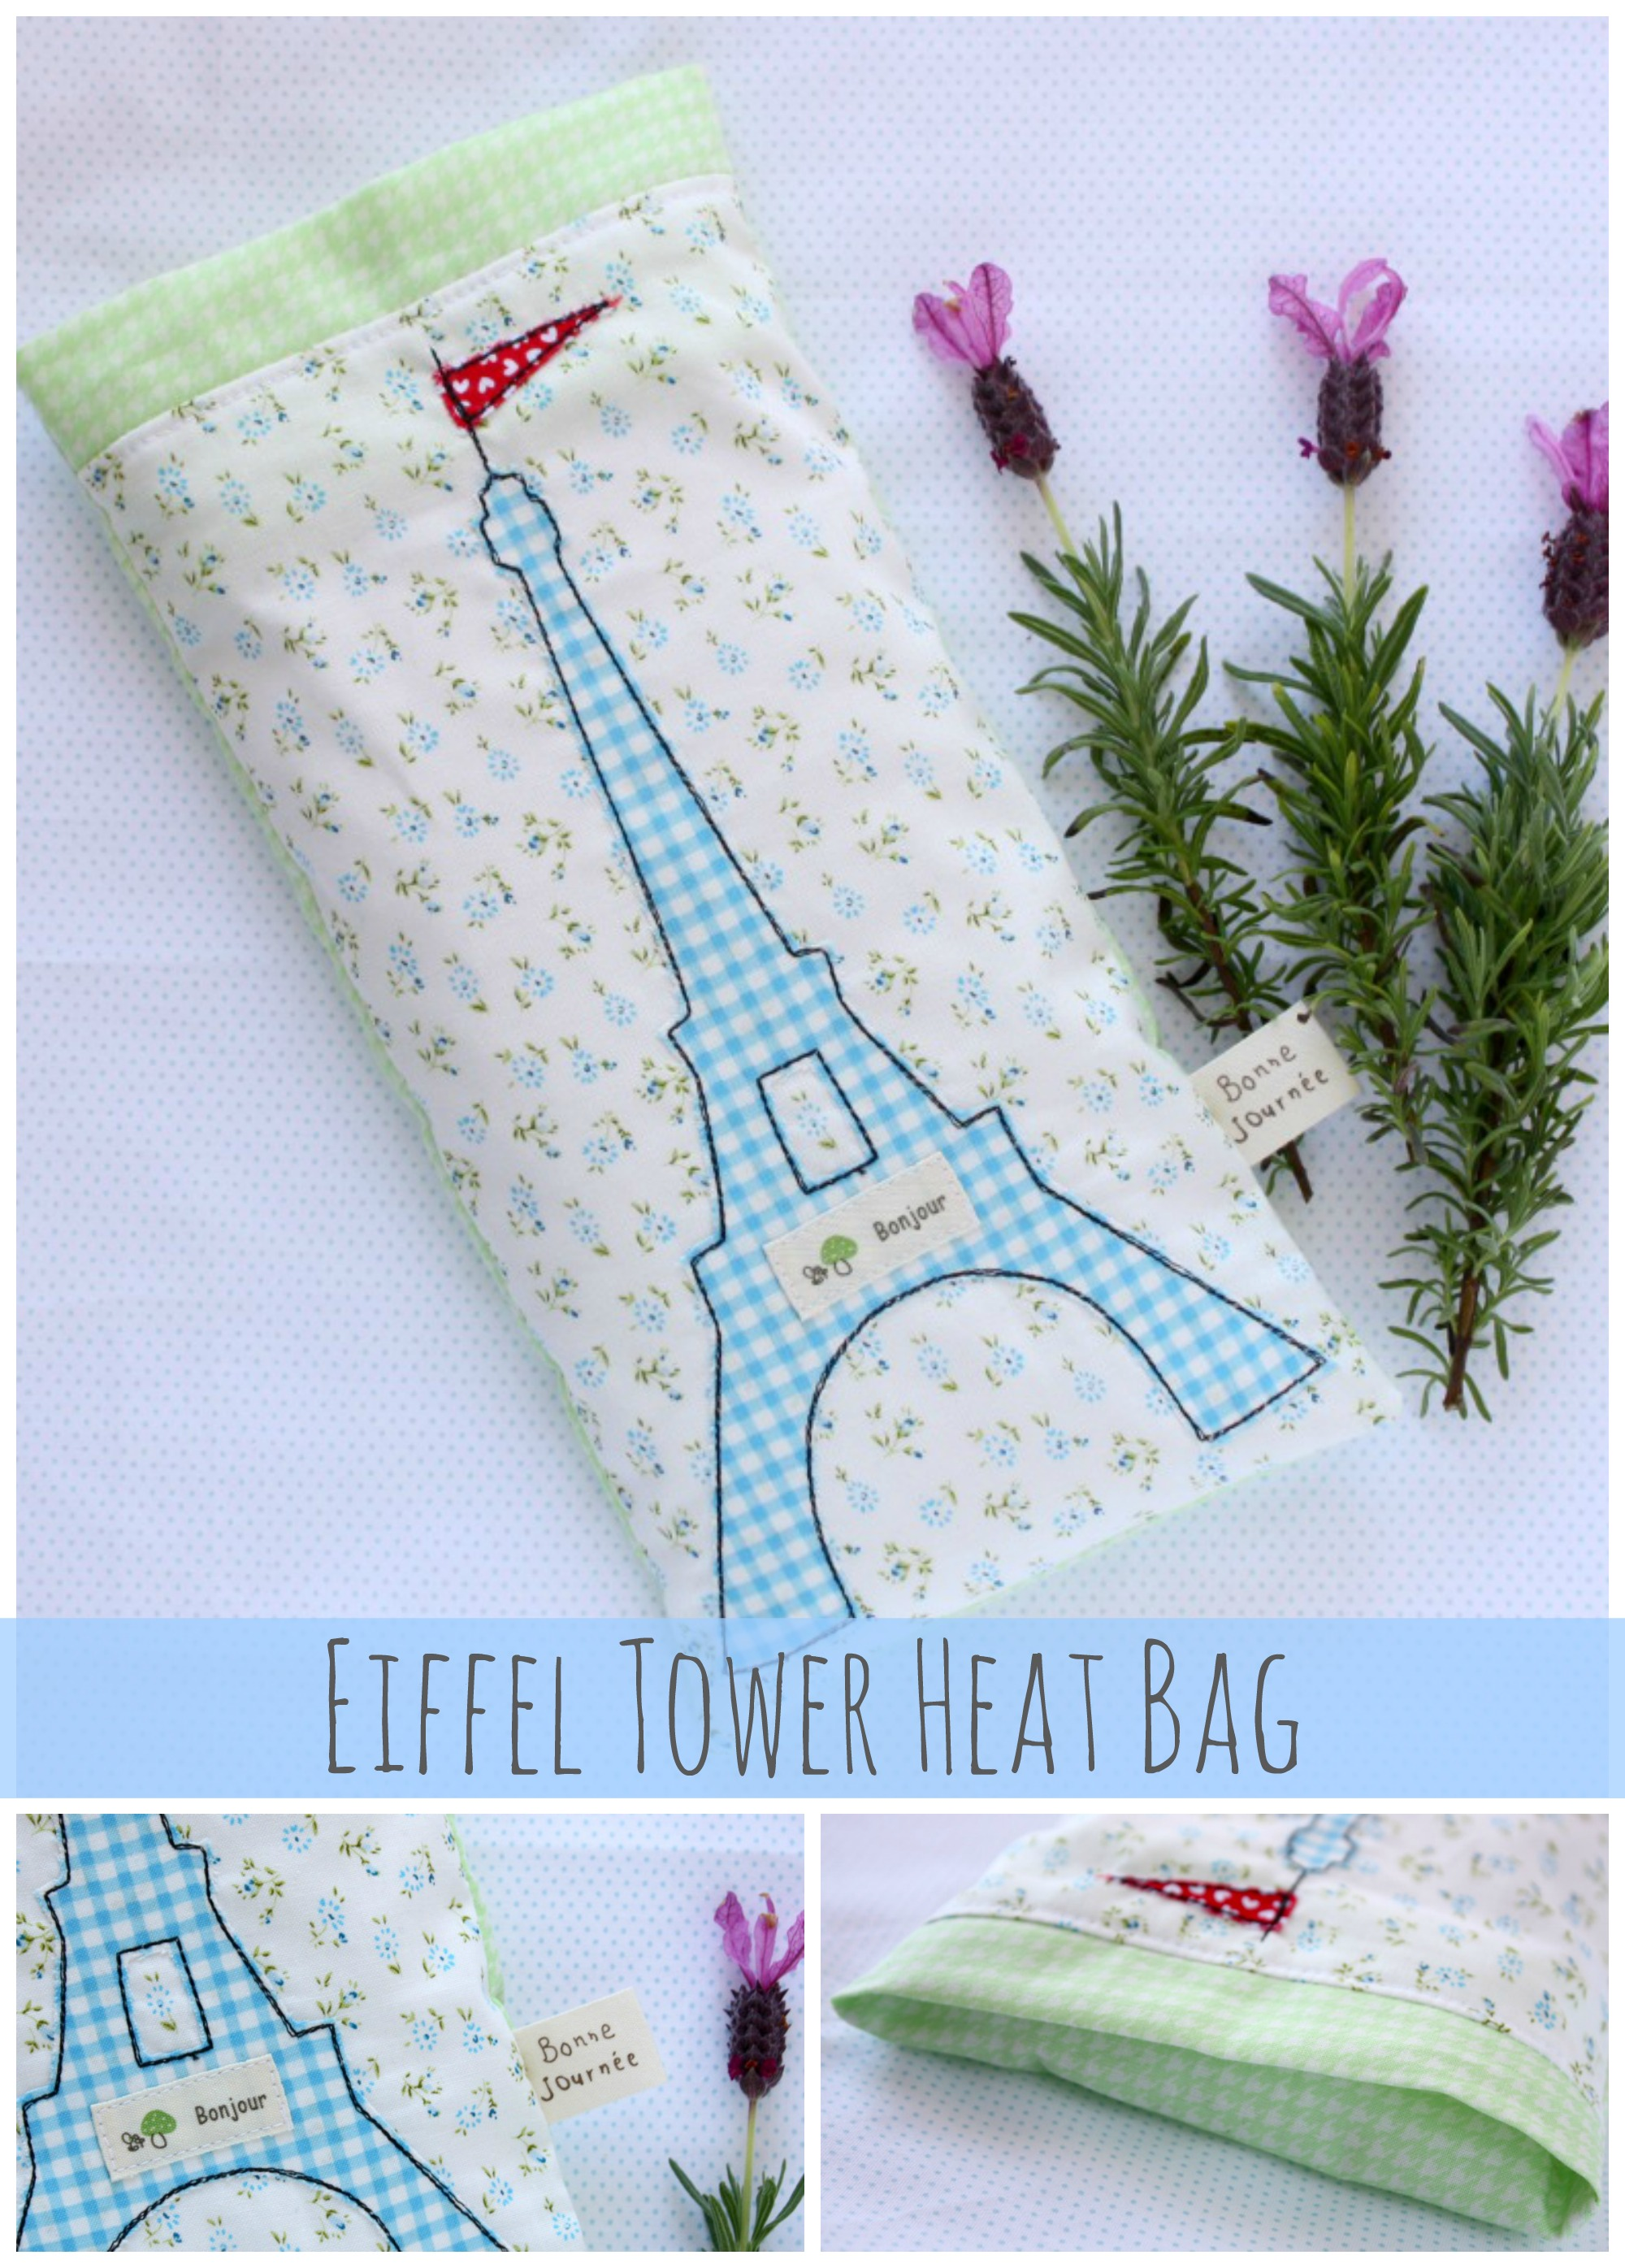 Eiffel-Tower-Heat-Bag-Main